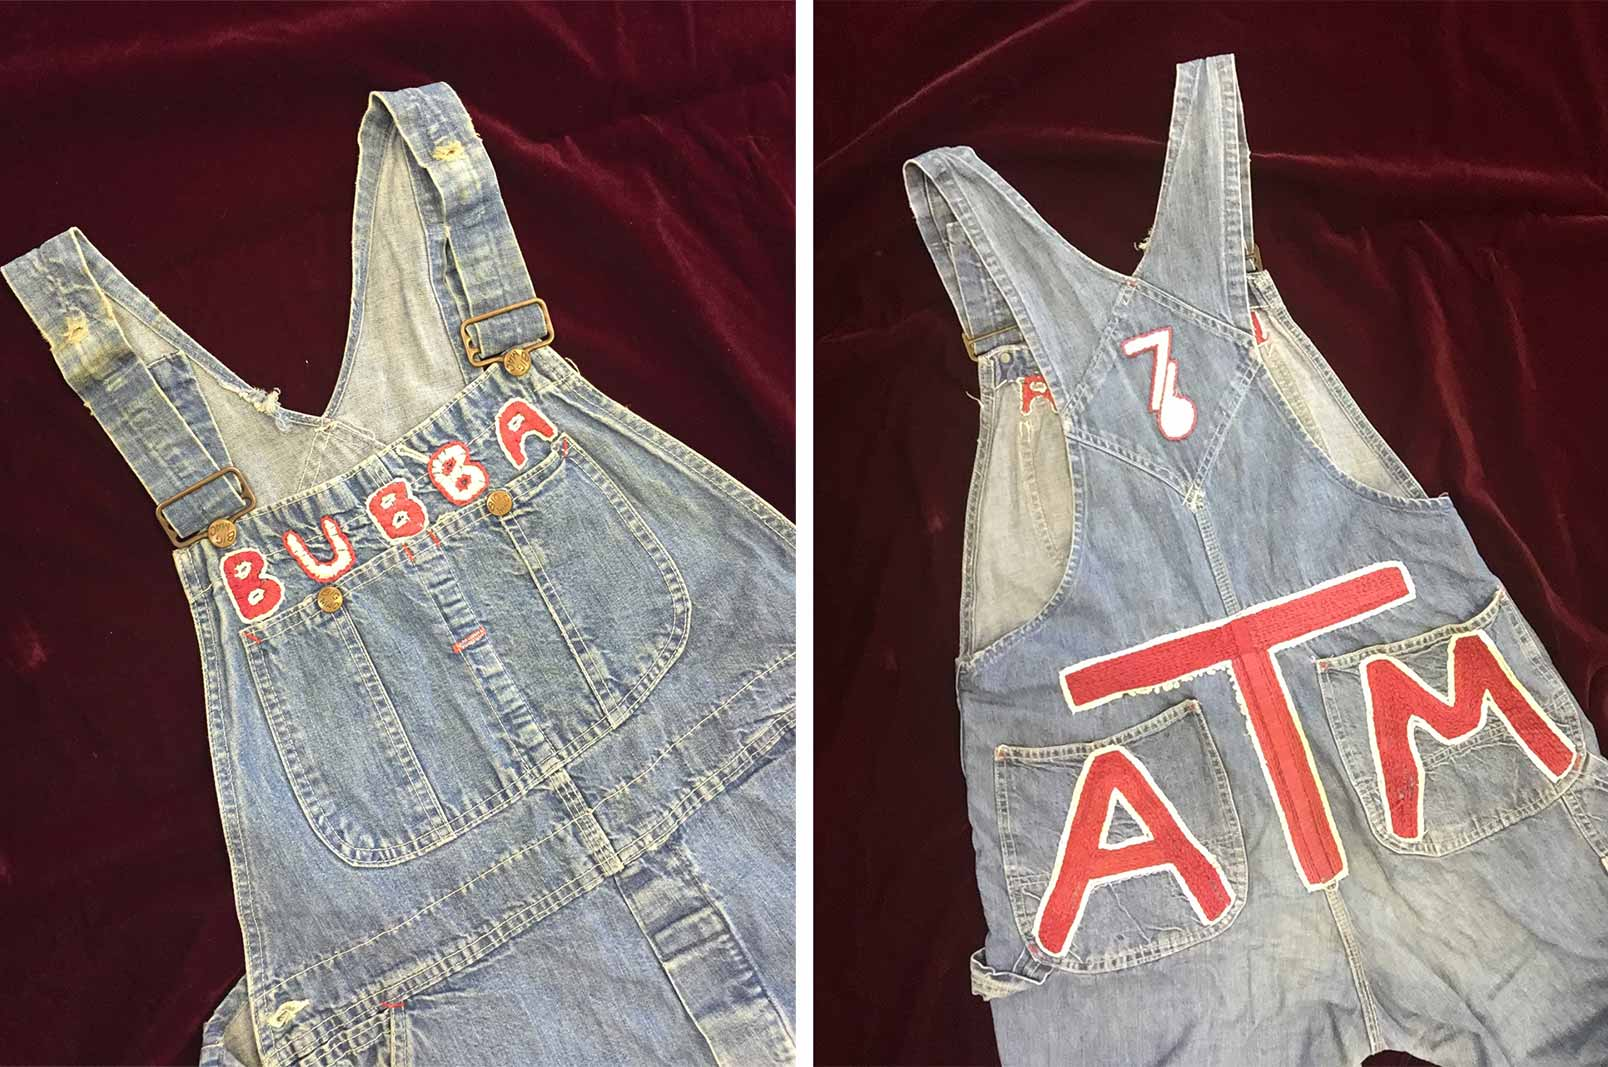 Jim Bob Mickler's 1976 Yell Leader overalls